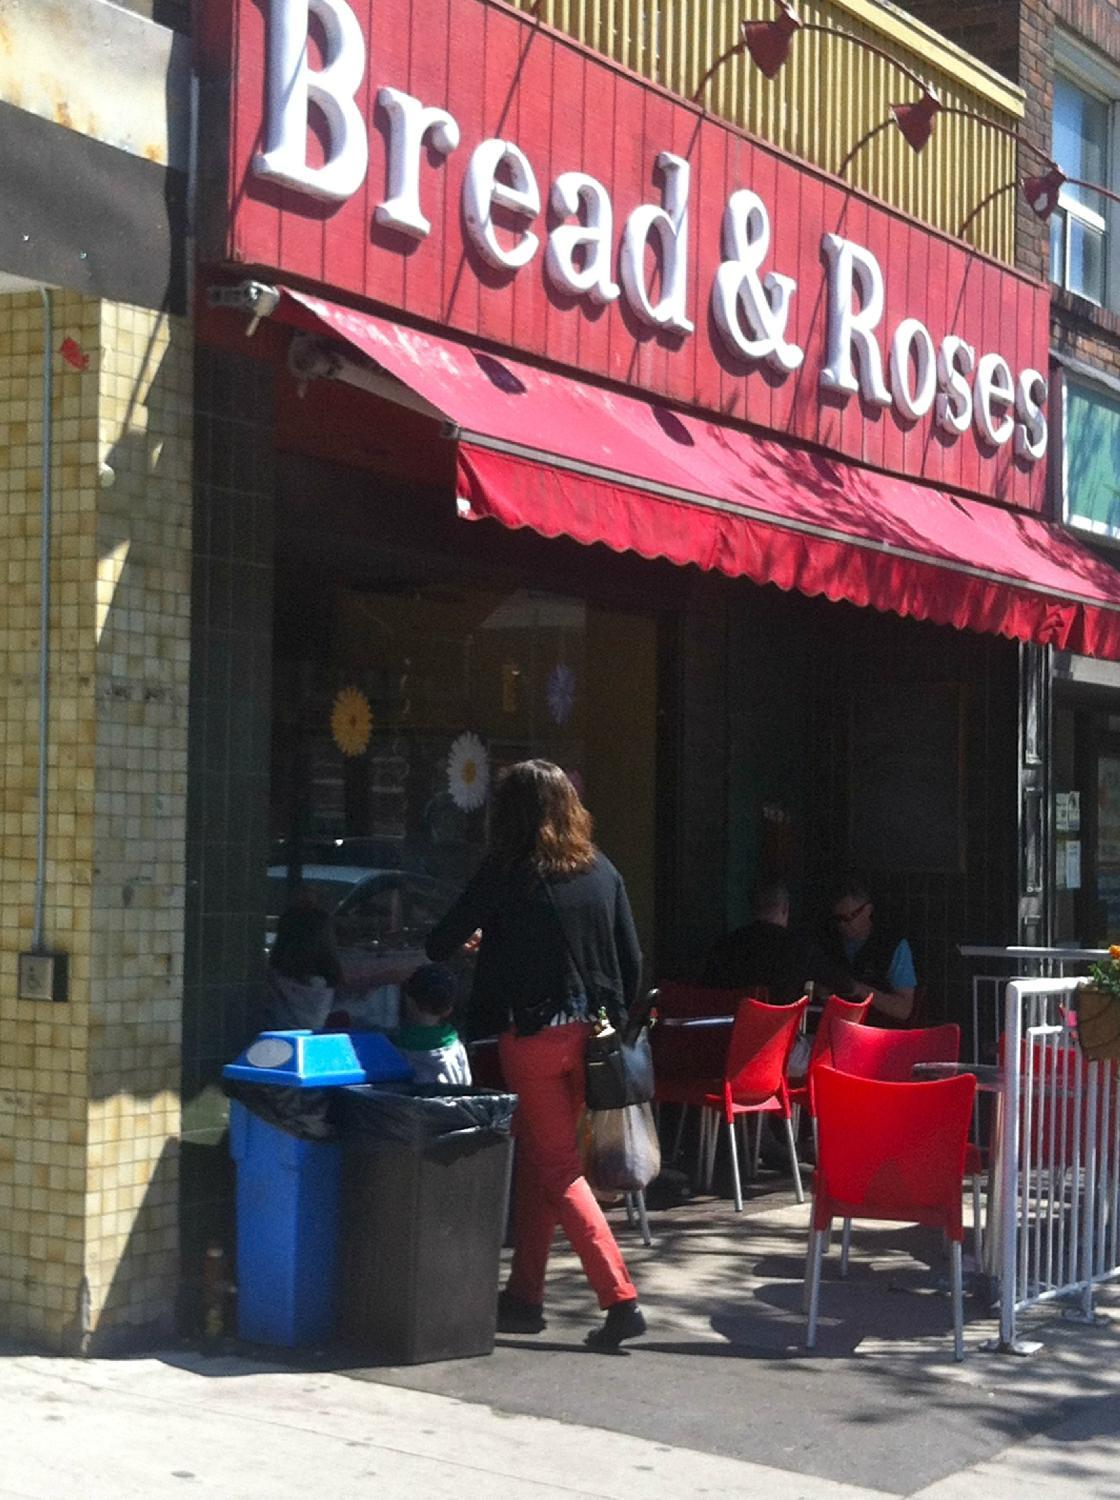 Bread & Roses Bakery Cafe